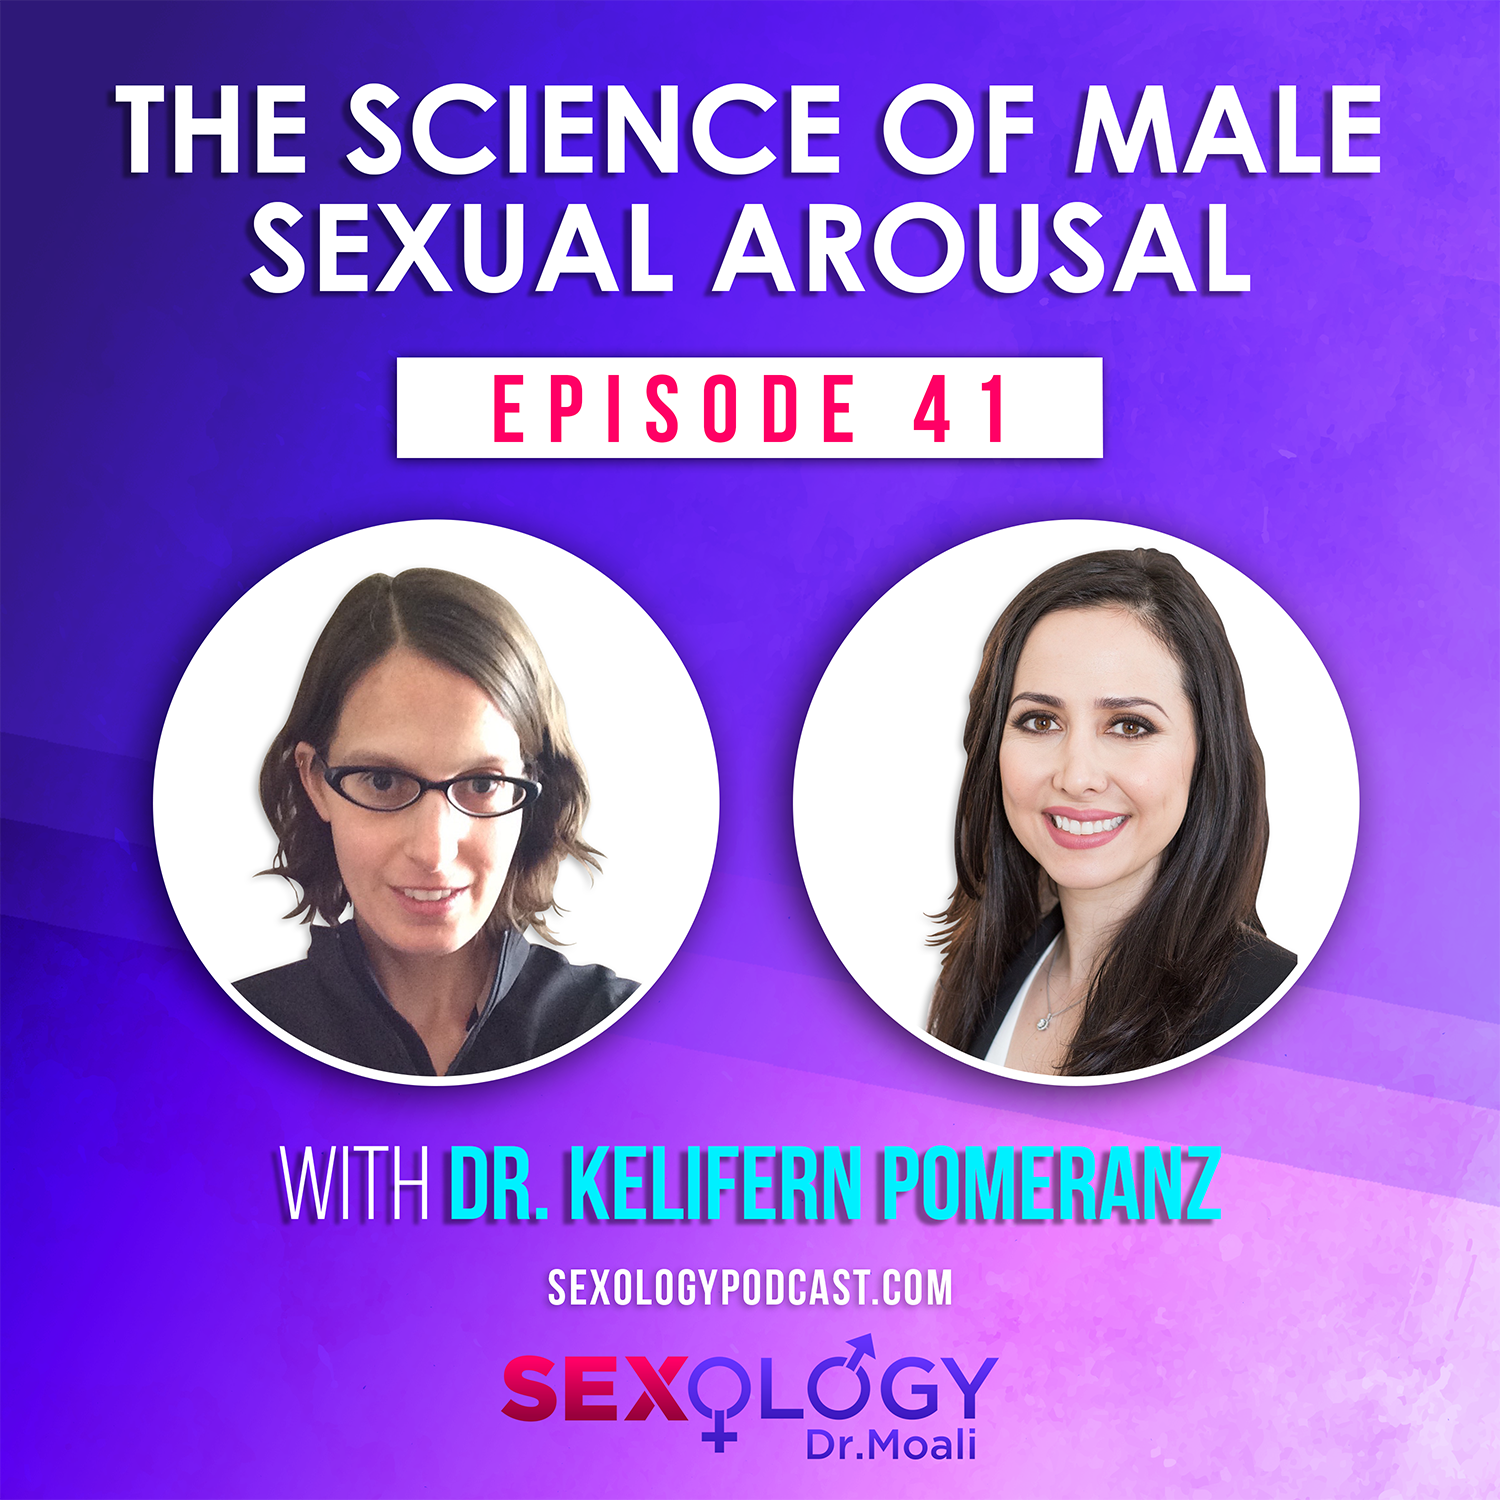 The Science of Male Sexual Arousal